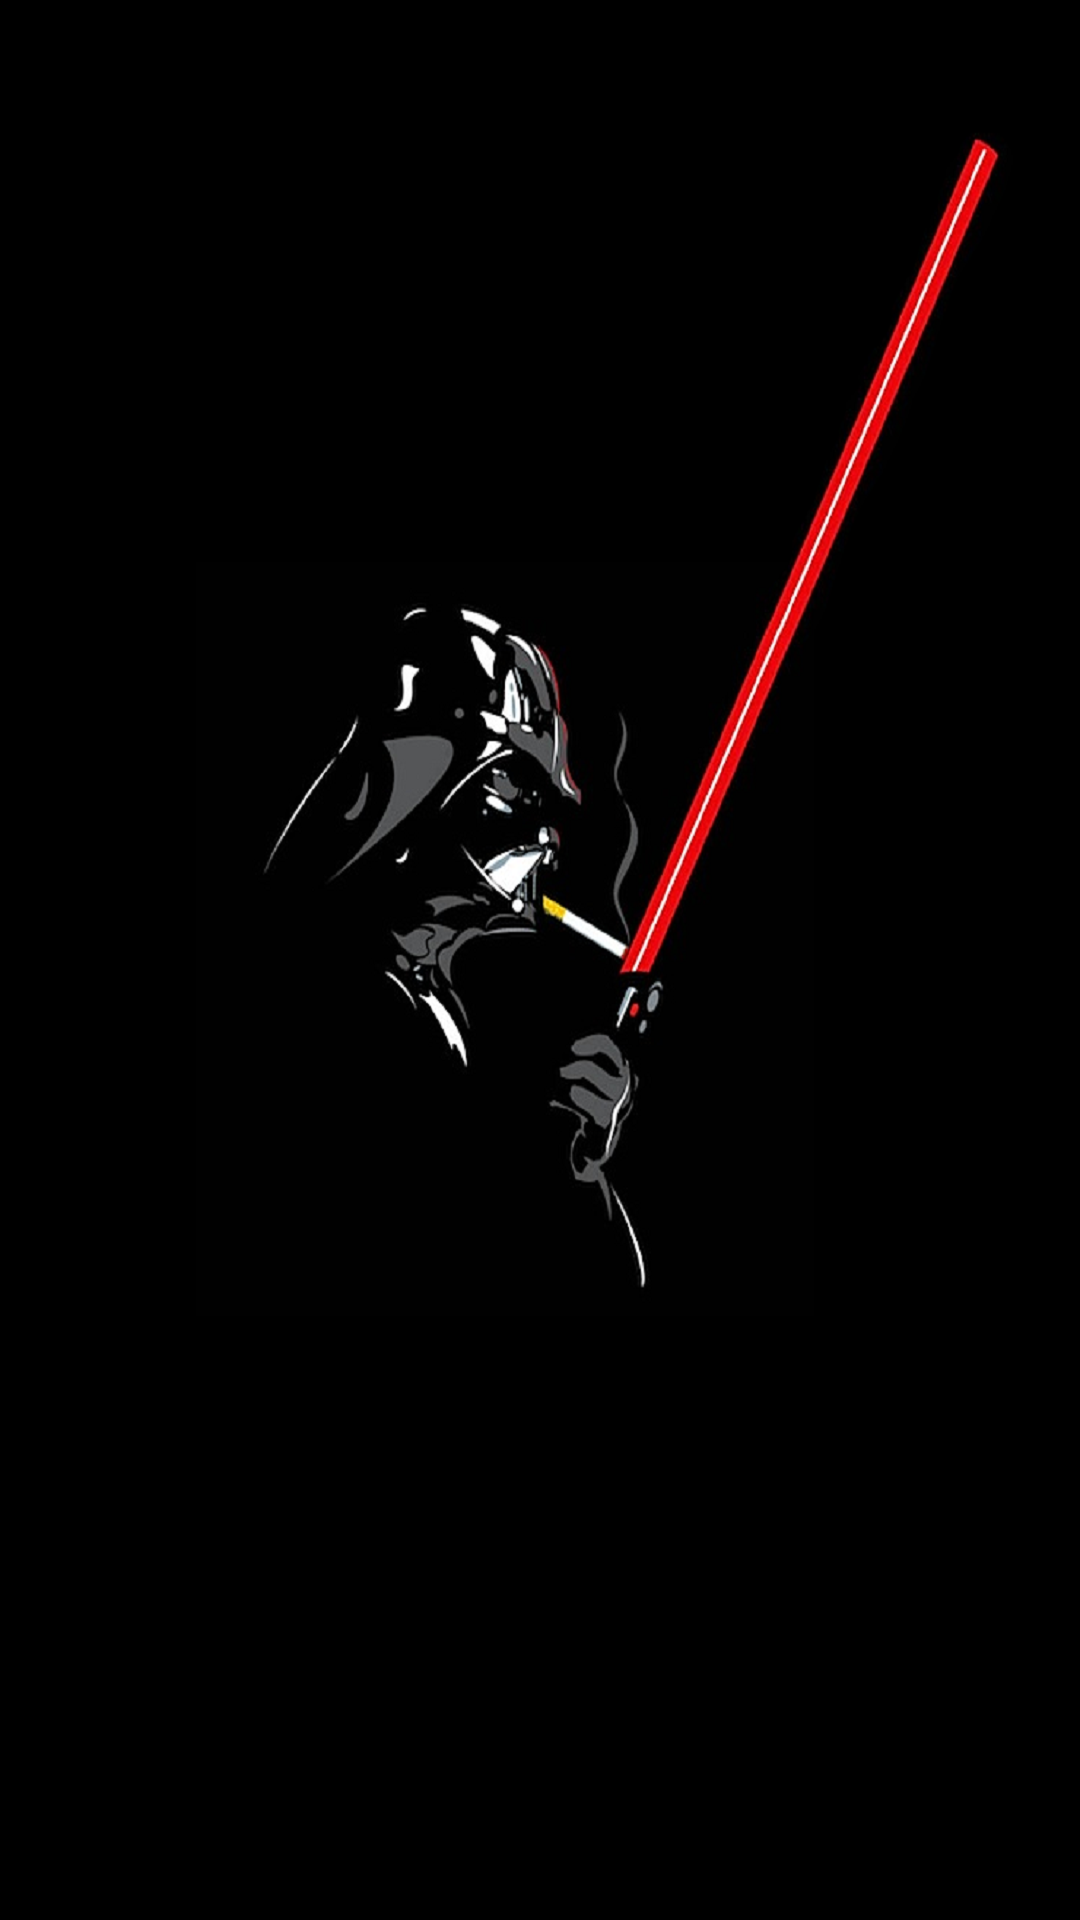 Free Download Xx 106sh Wallpapers Darth Vader Android